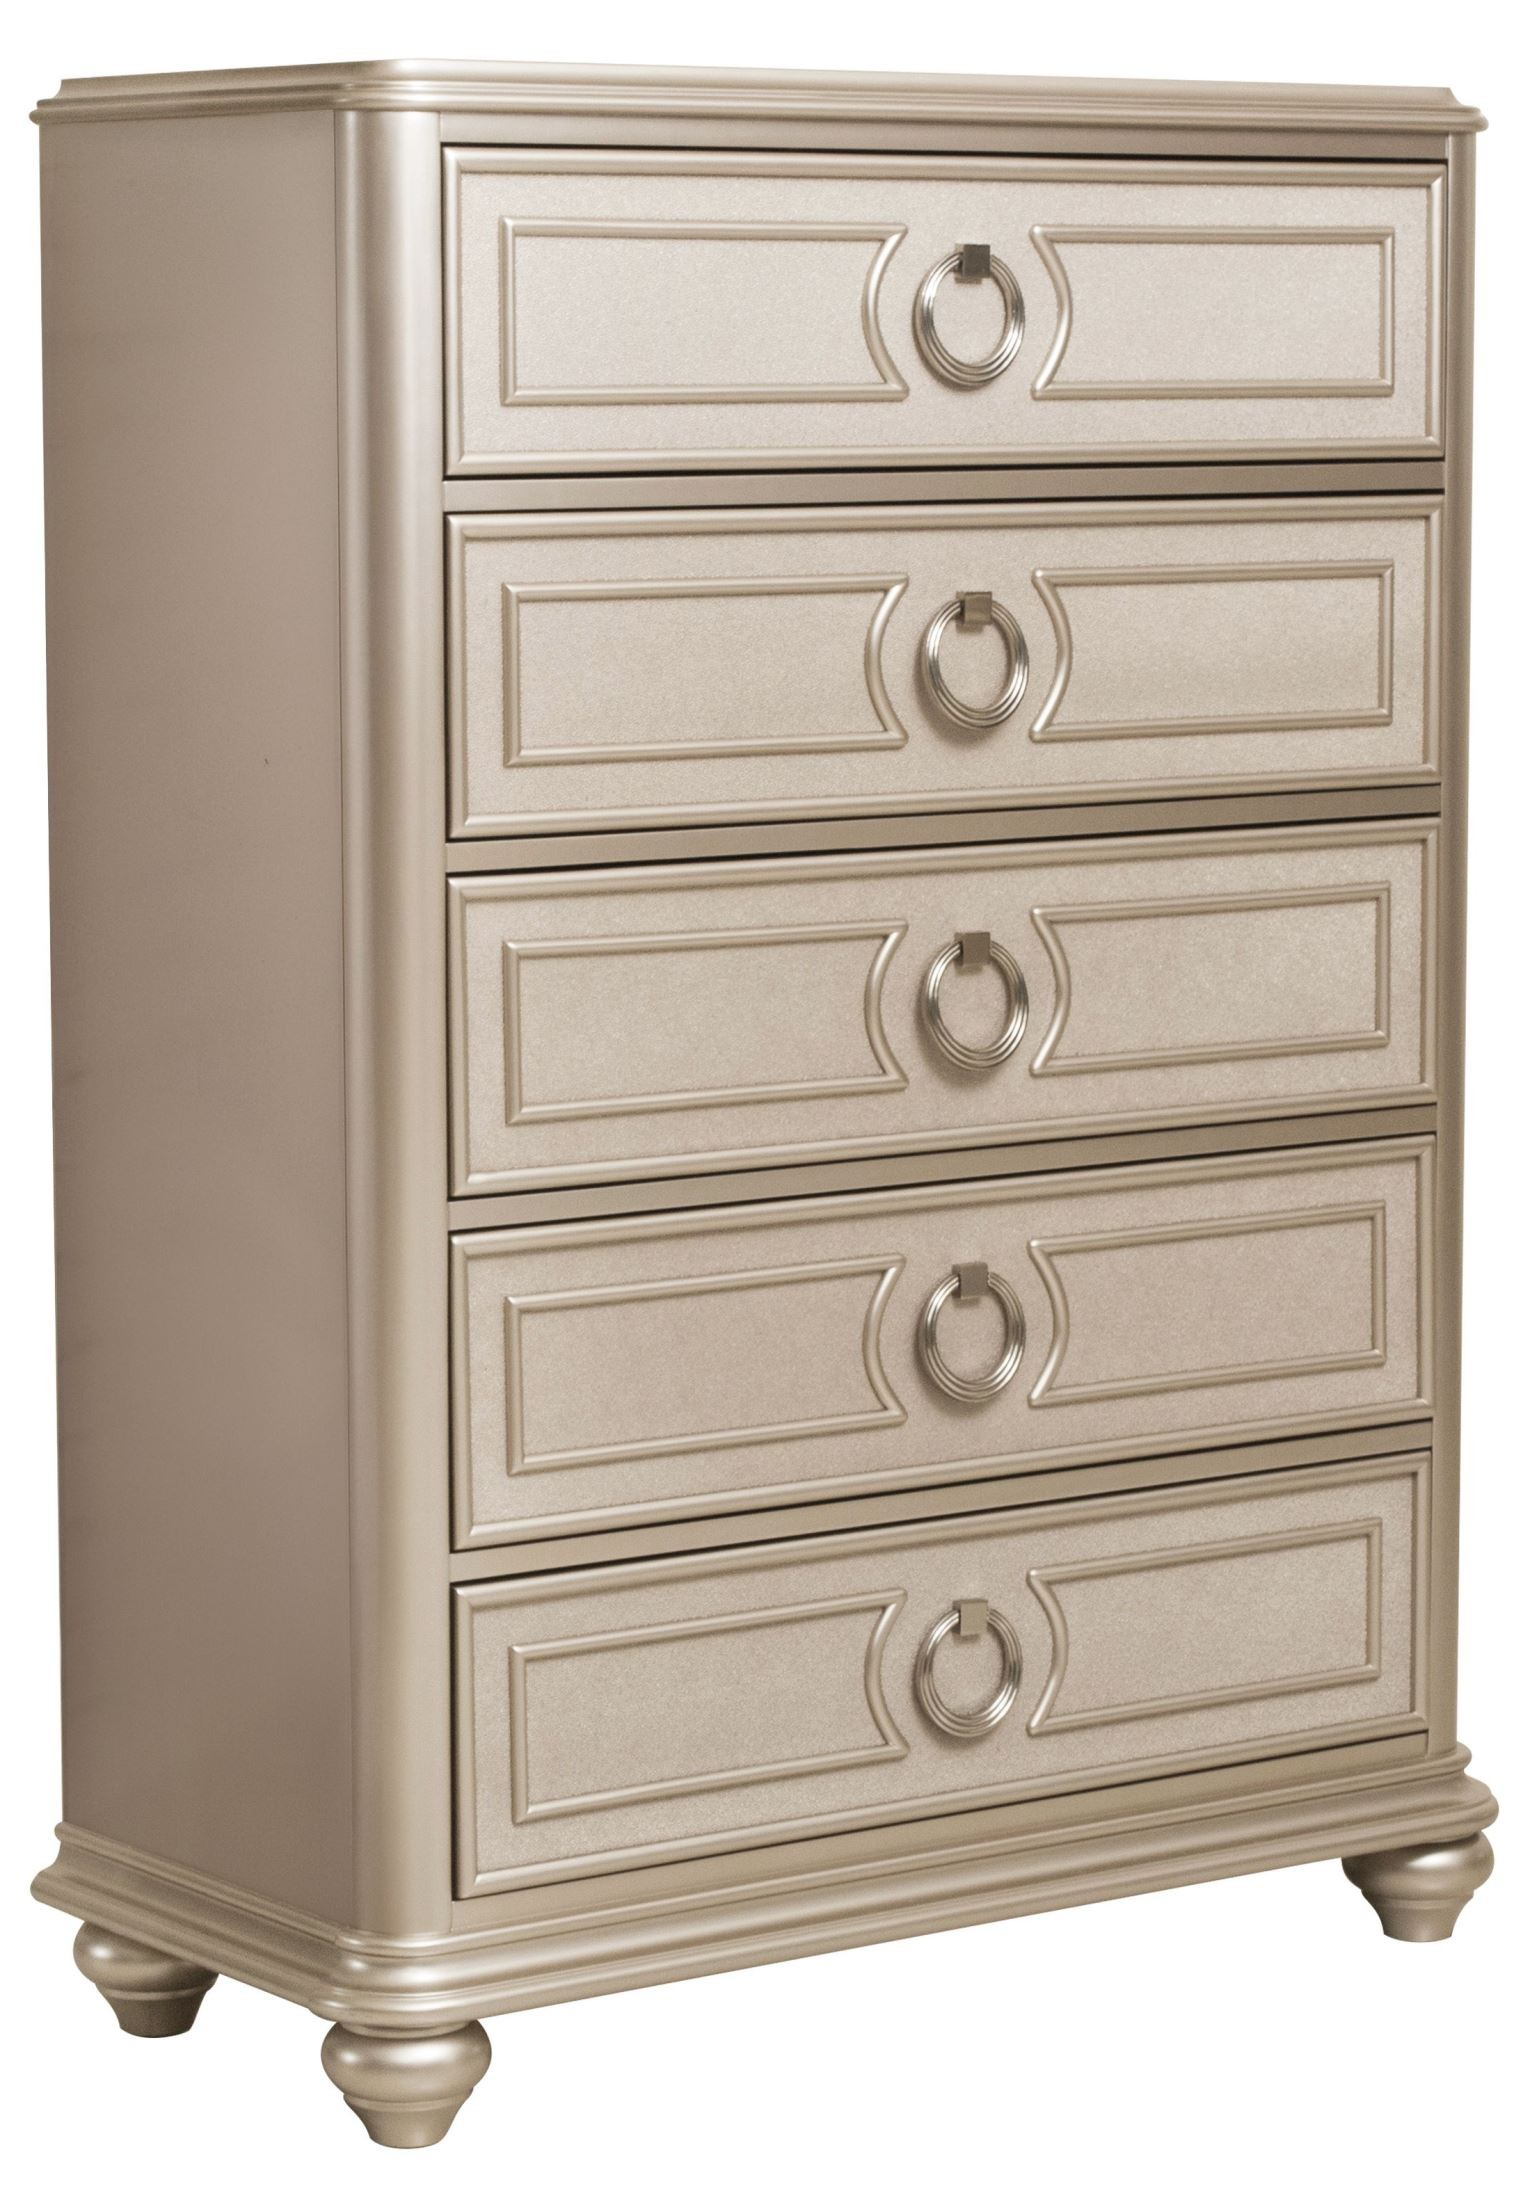 Dynasty Gold Metallic Drawer Chest S044 040 Samuel Lawrence